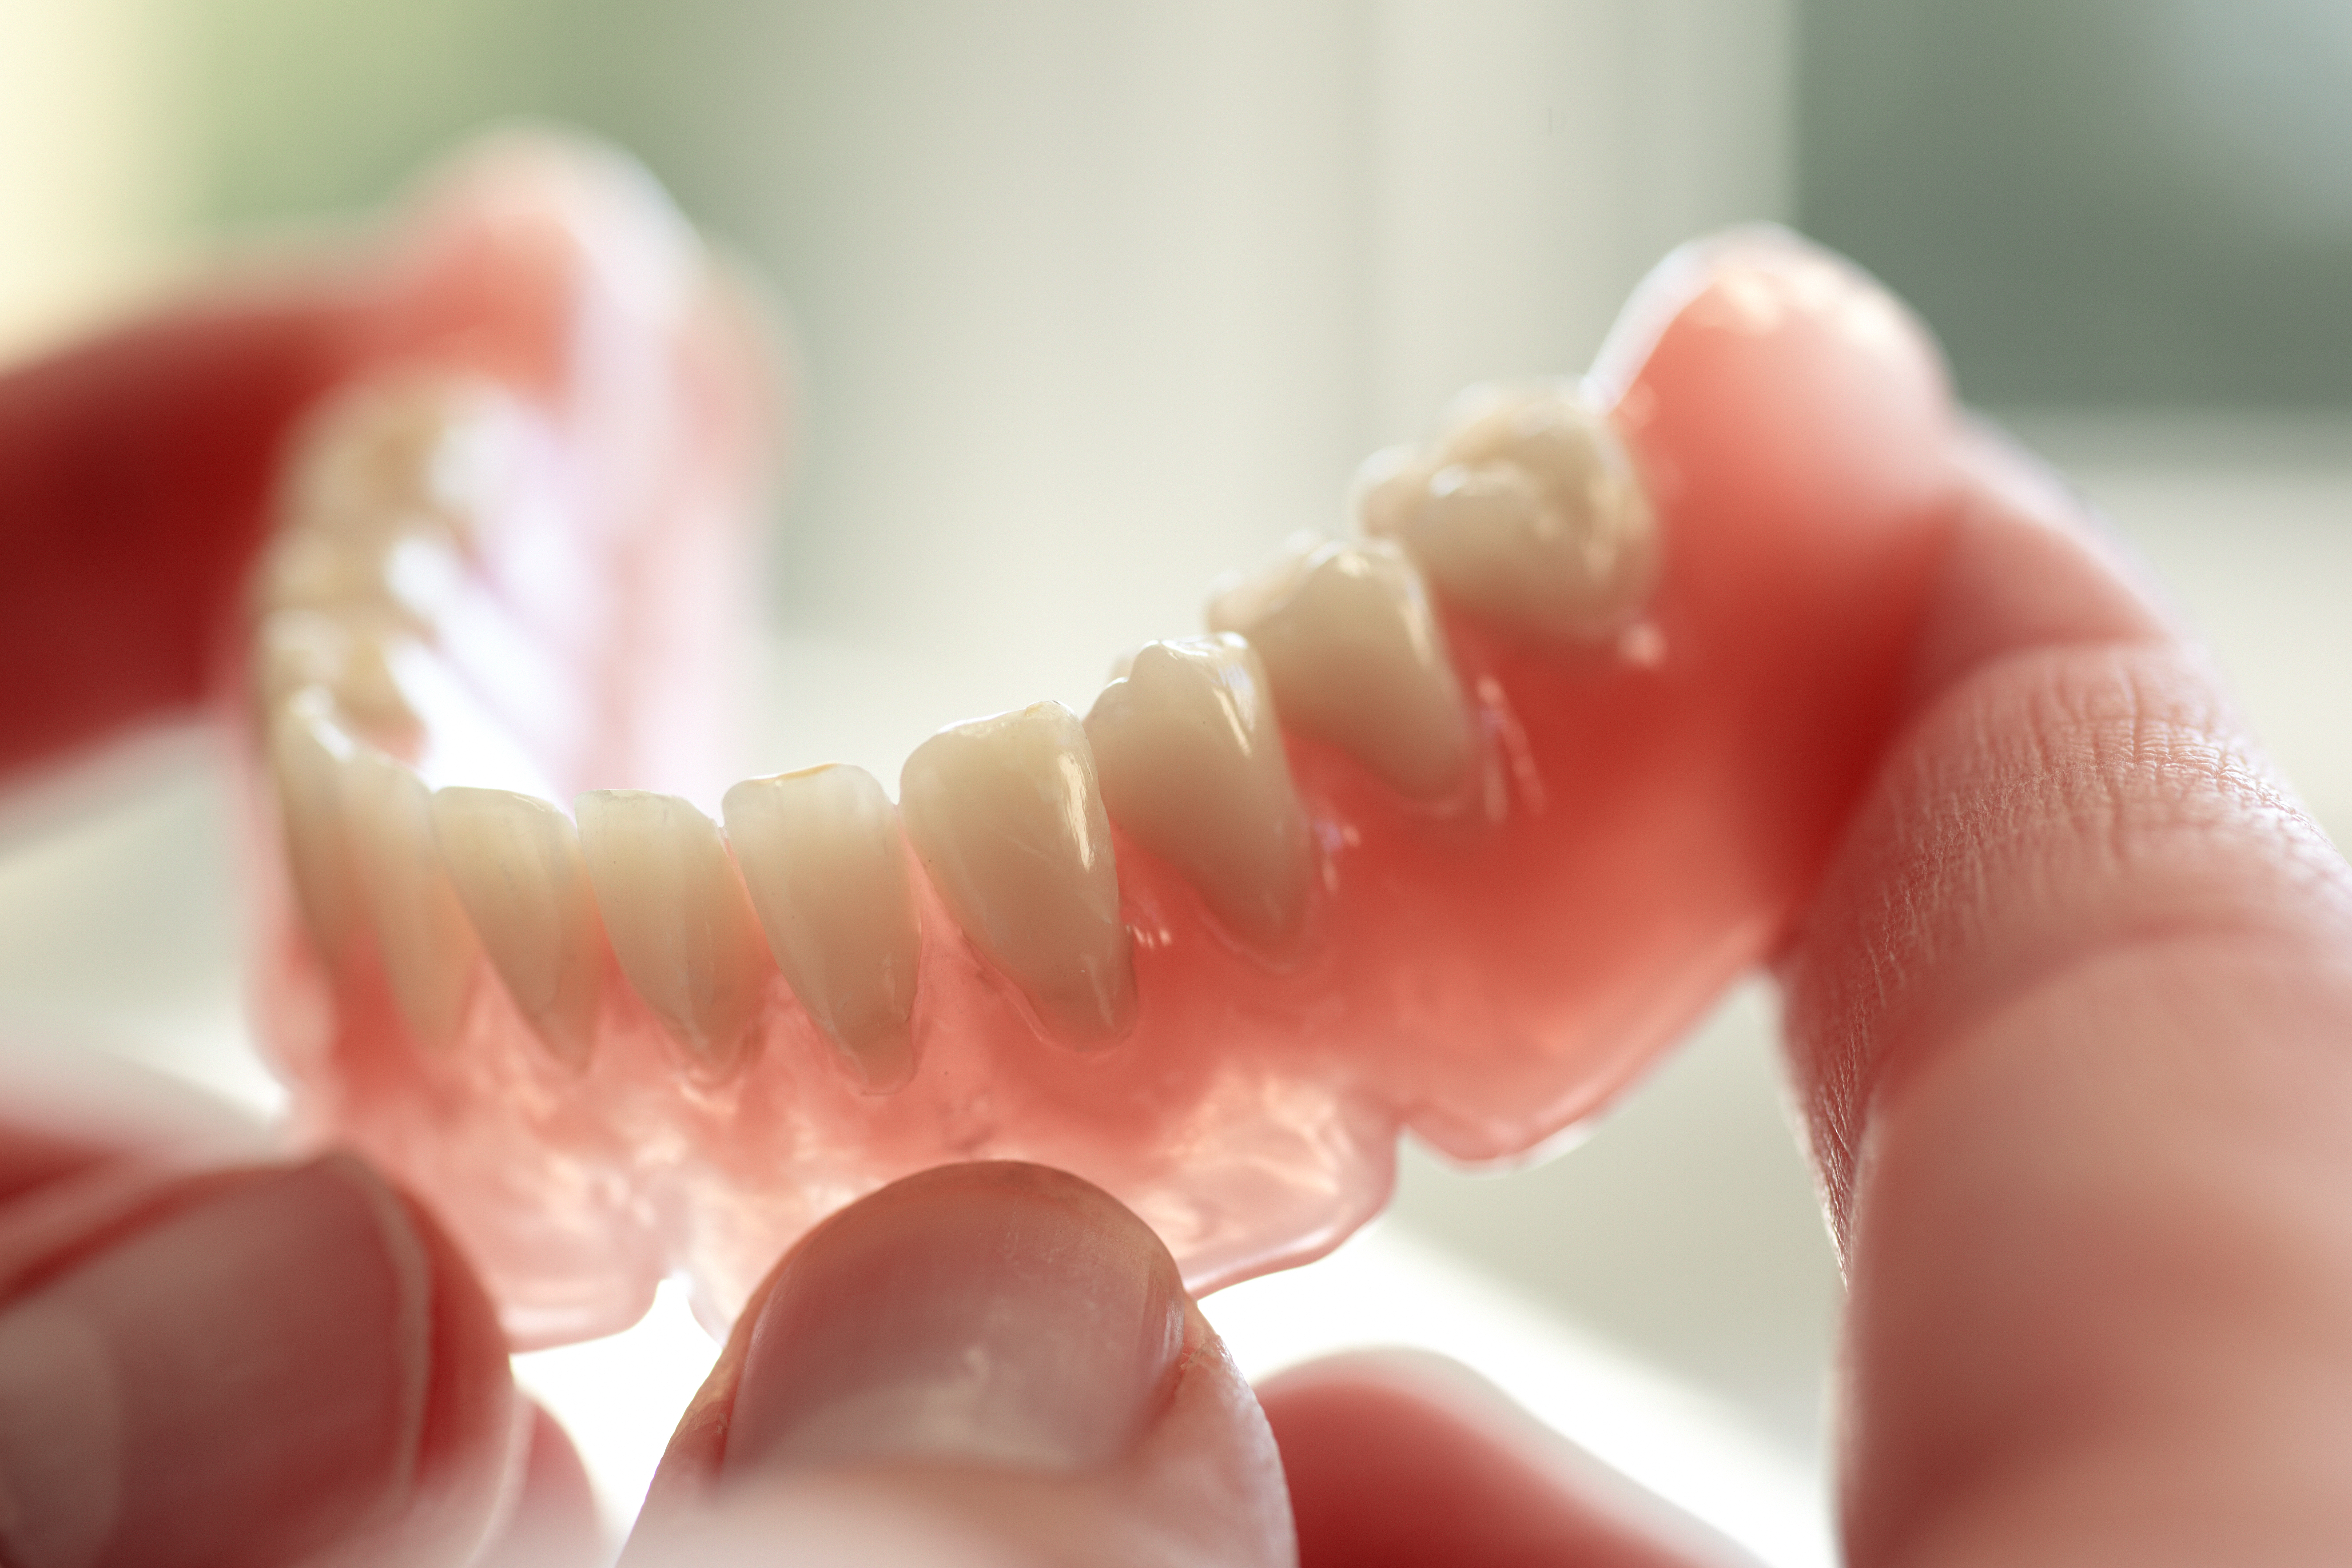 Close up photo of lower denture section in hands